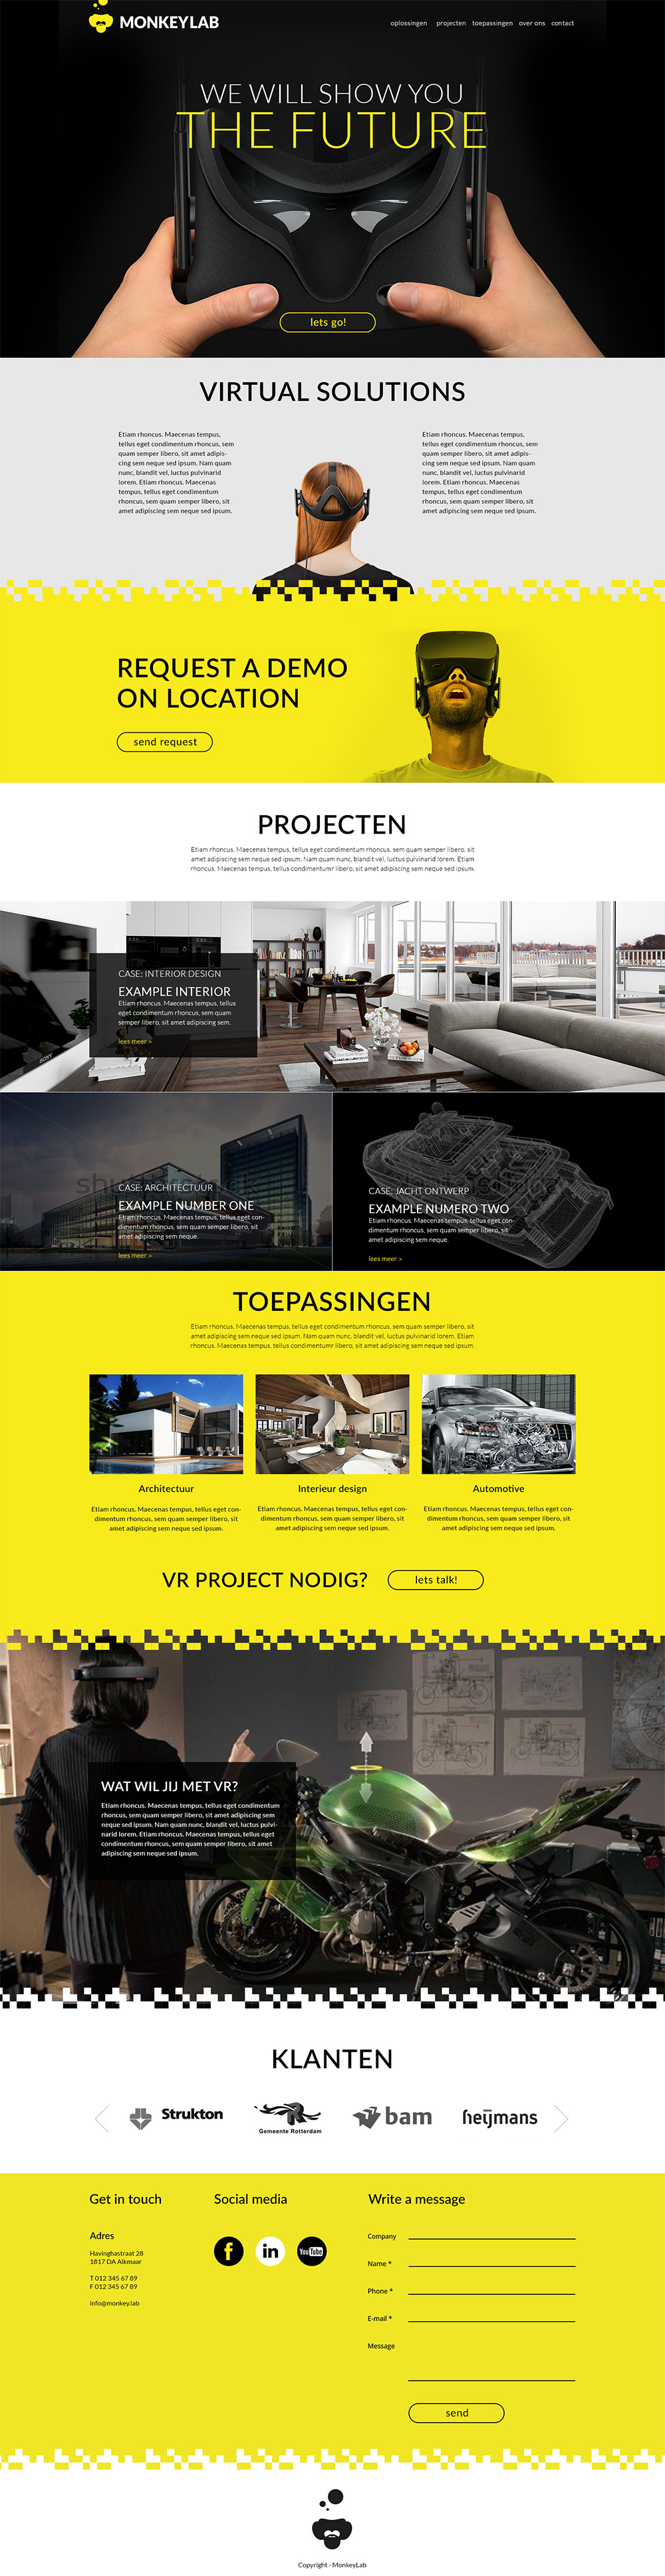 webdesign-website-monkeylab-website-desktop